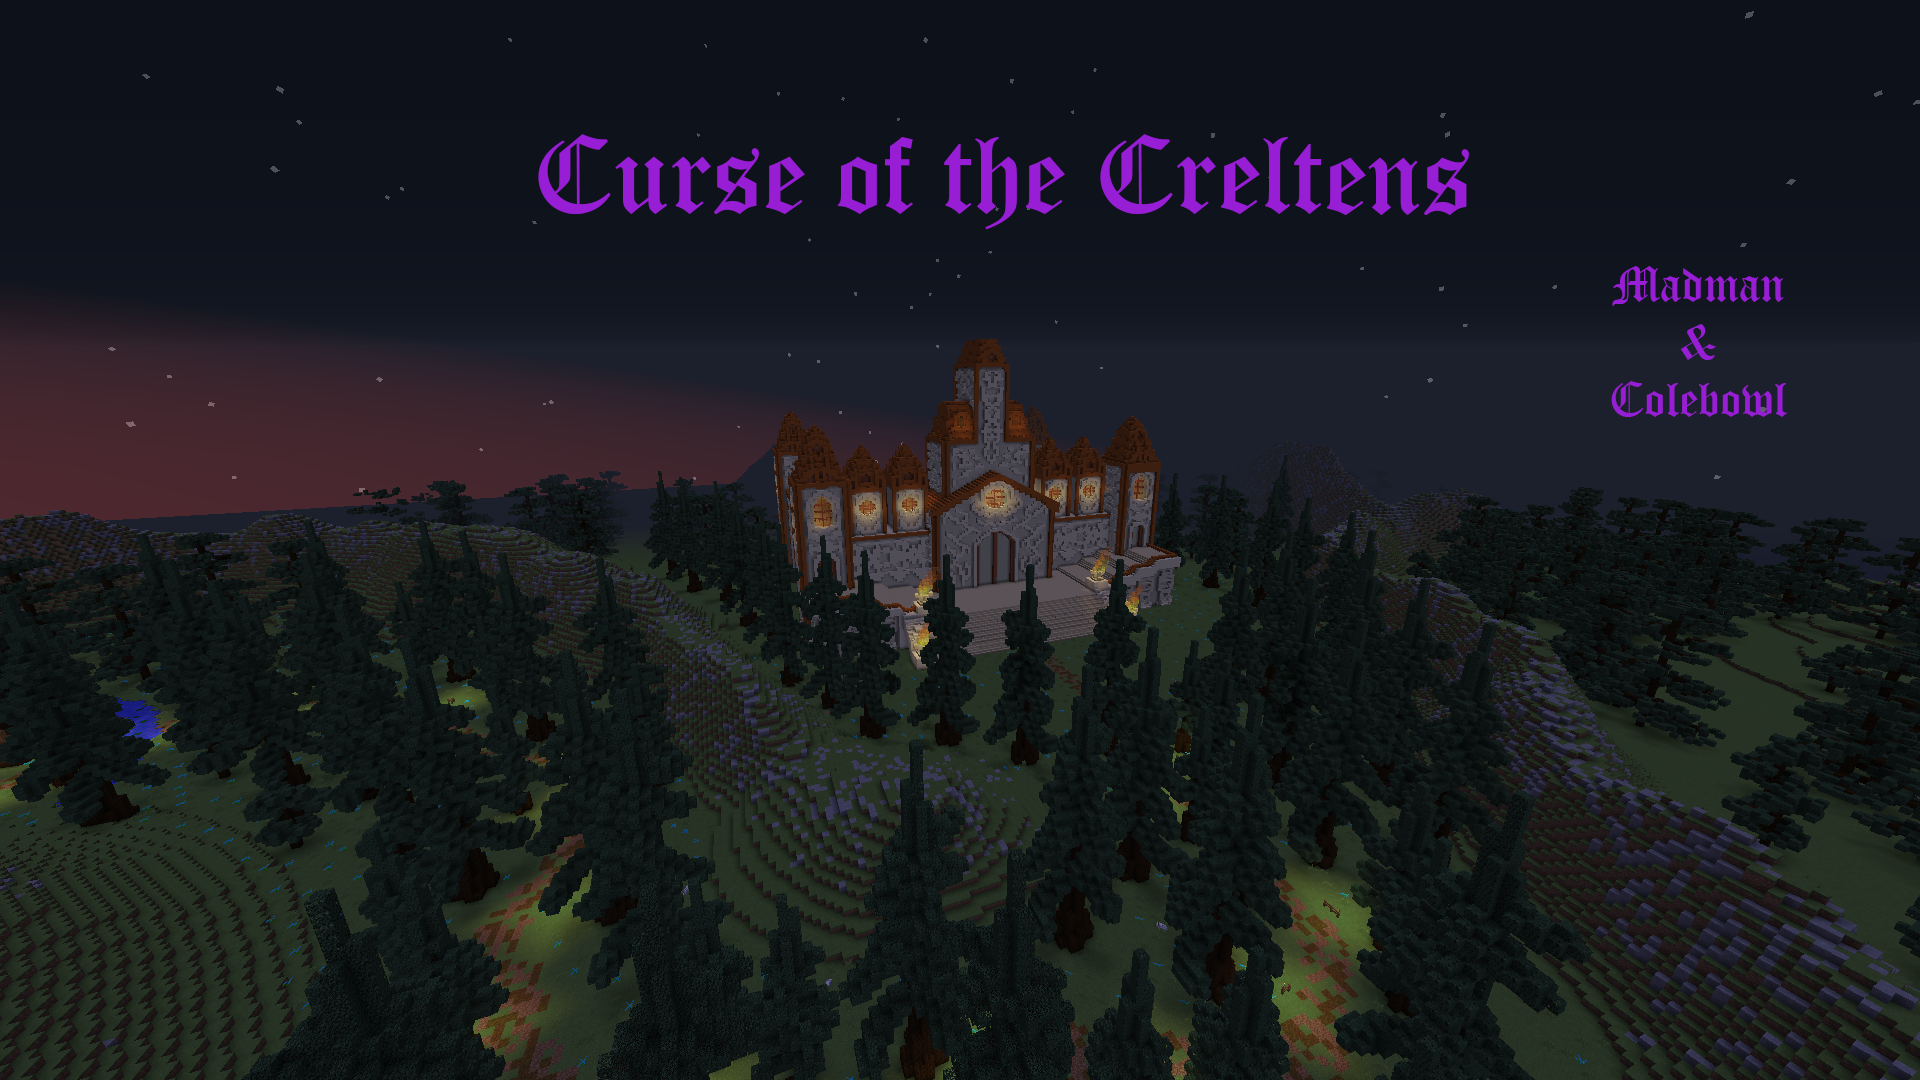 Télécharger Curse of the Creltens pour Minecraft 1.12.2